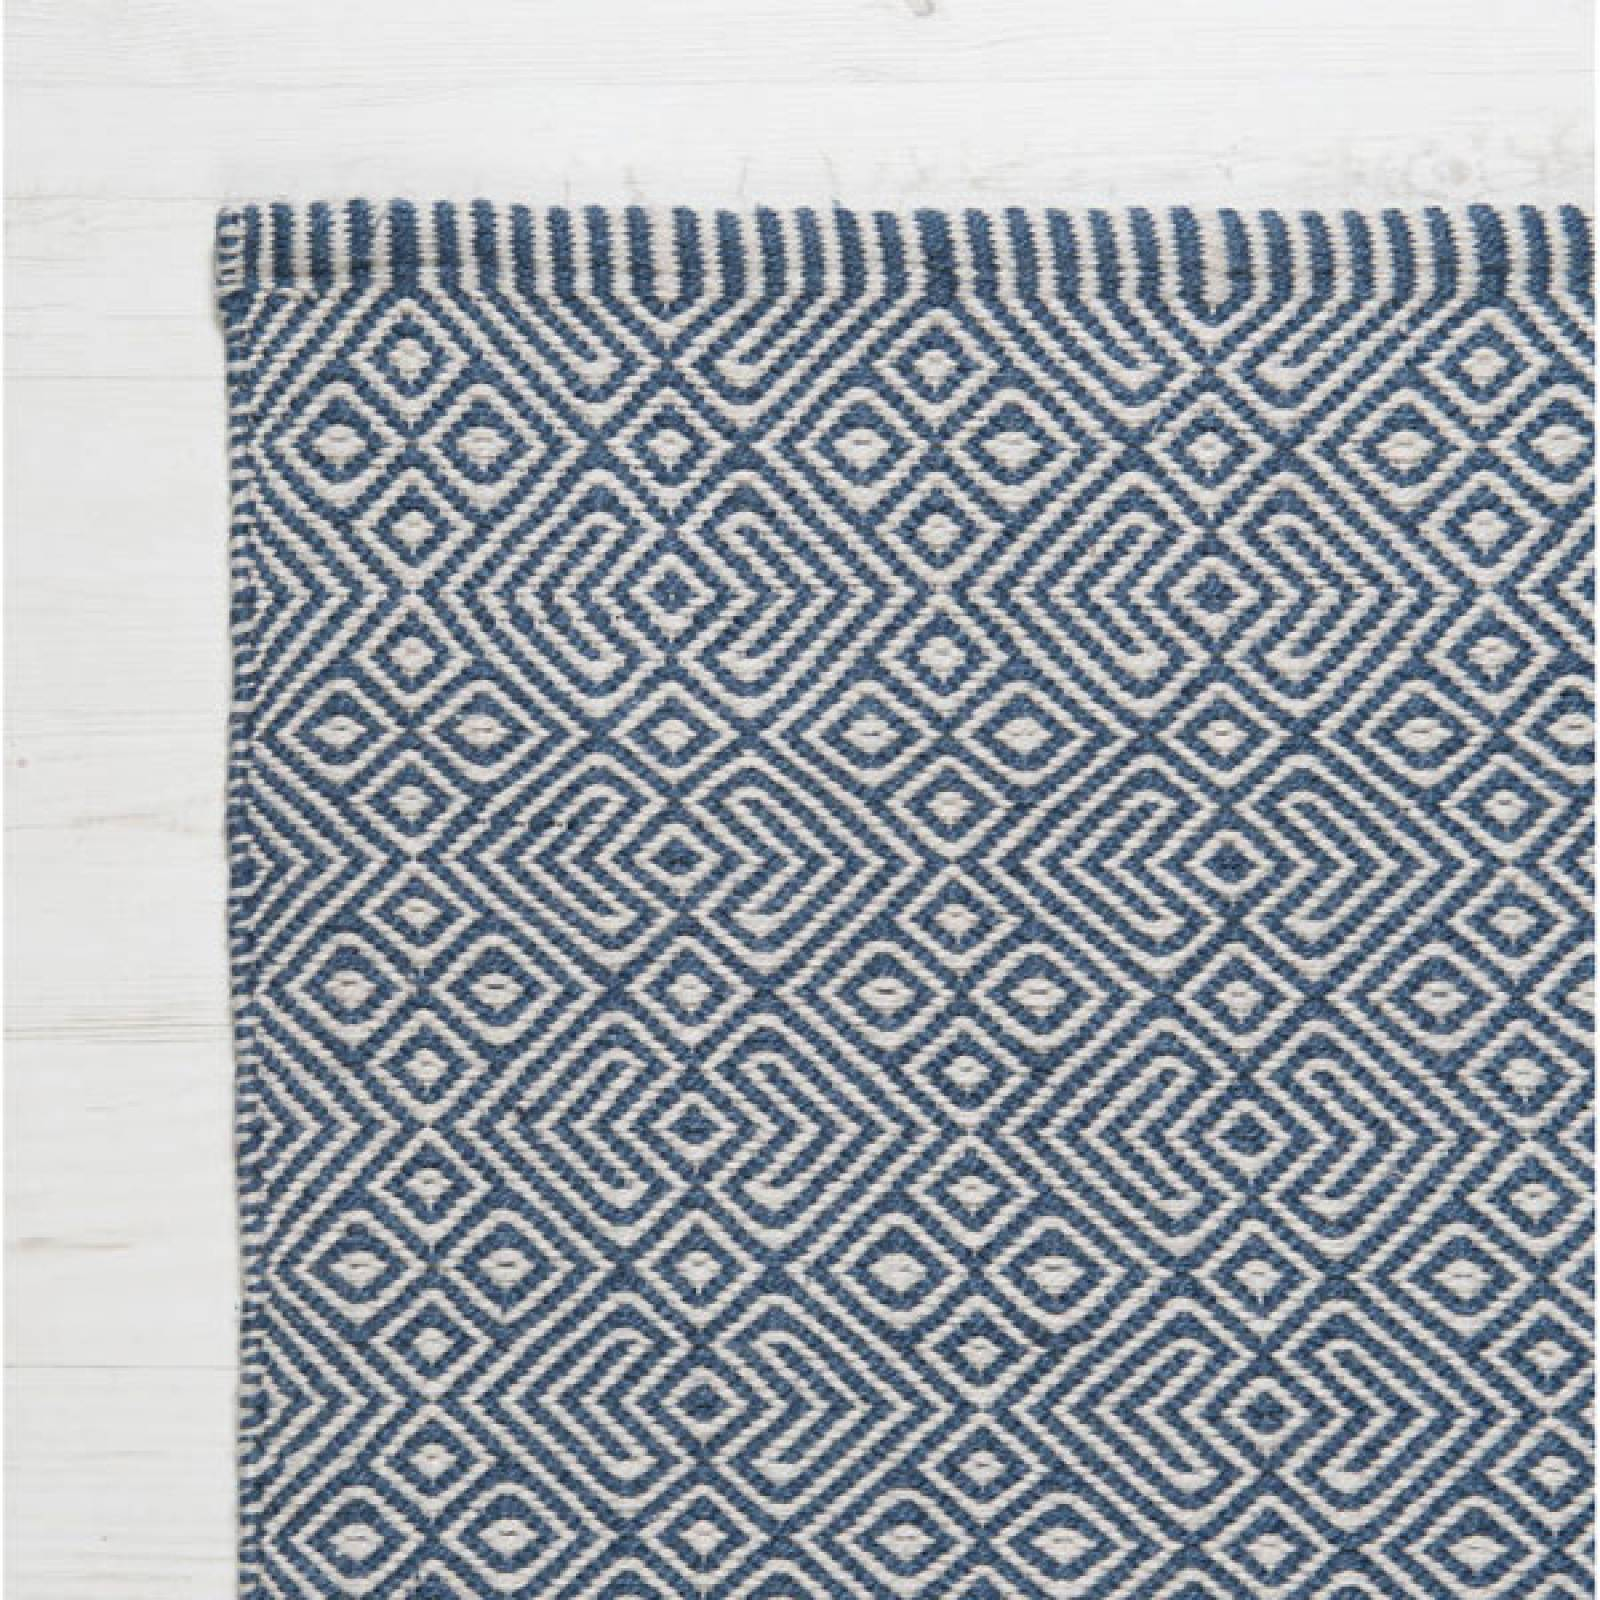 Provence NAVY 240 x 170cm Recycled Bottle Rug